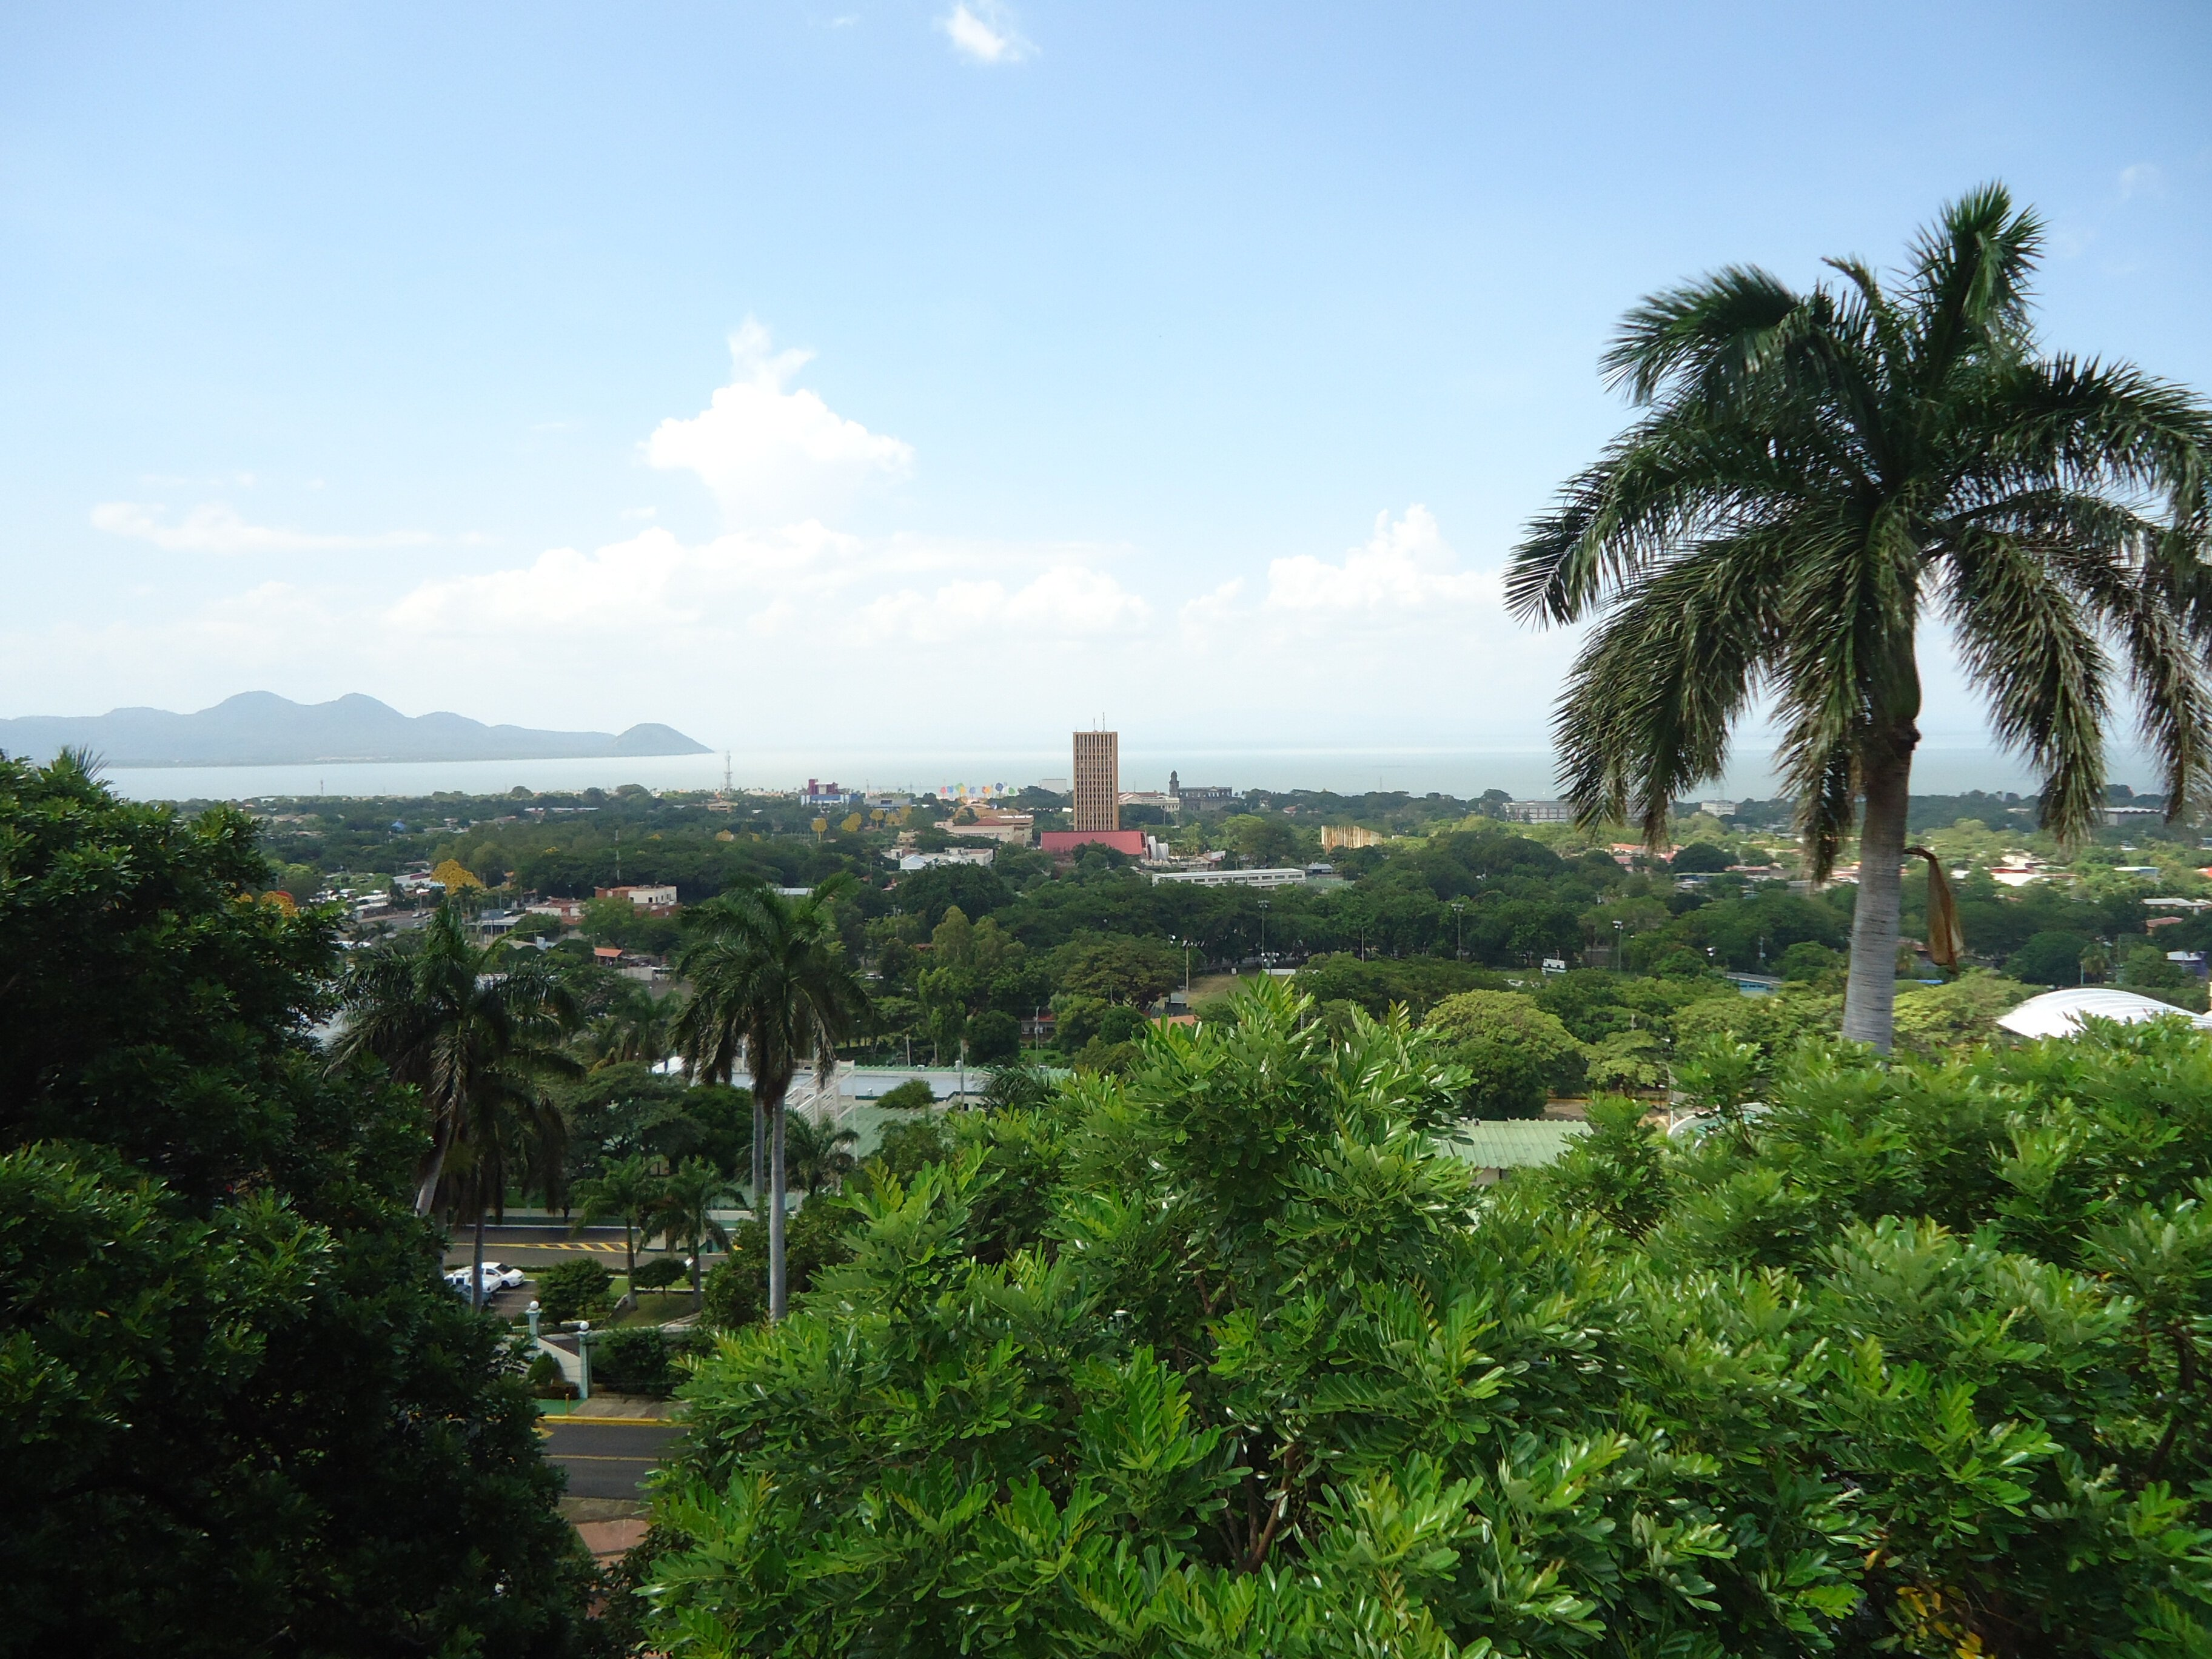 """<cur_name>US$</cur_name><cur_val>642</cur_val> &#8211; <span id=""""translate"""">Cheap flights to</span> <span id=""""translate"""">Managua</span> <span id=""""translate"""">from</span> <span id=""""translate"""">New York</span> &#8211; <span id=""""translate"""">First Class</span> (American Airlines)"""